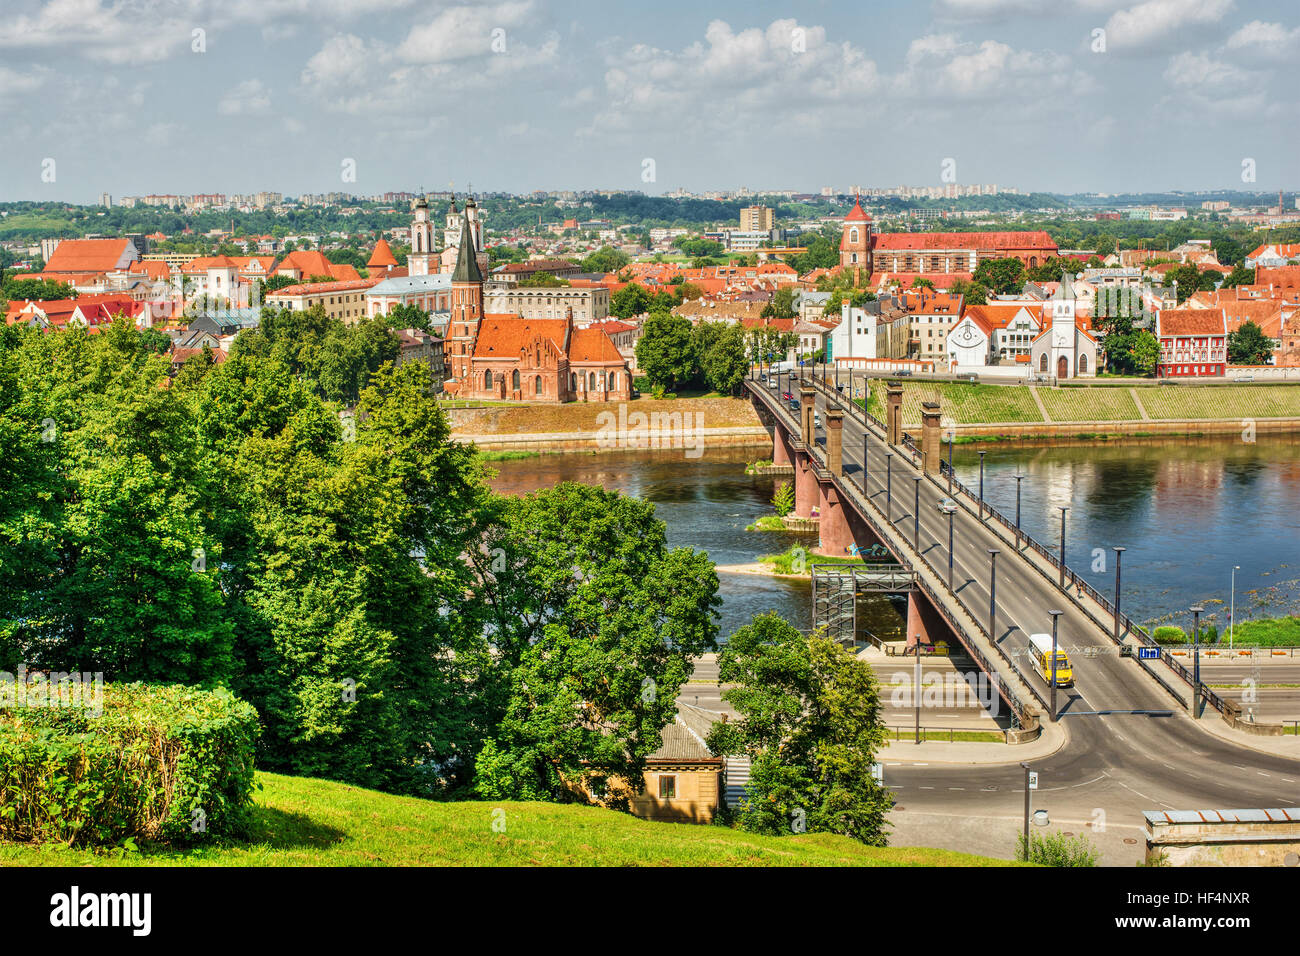 Cityscape of Kaunas (Lithuania), HDR-technique - Stock Image